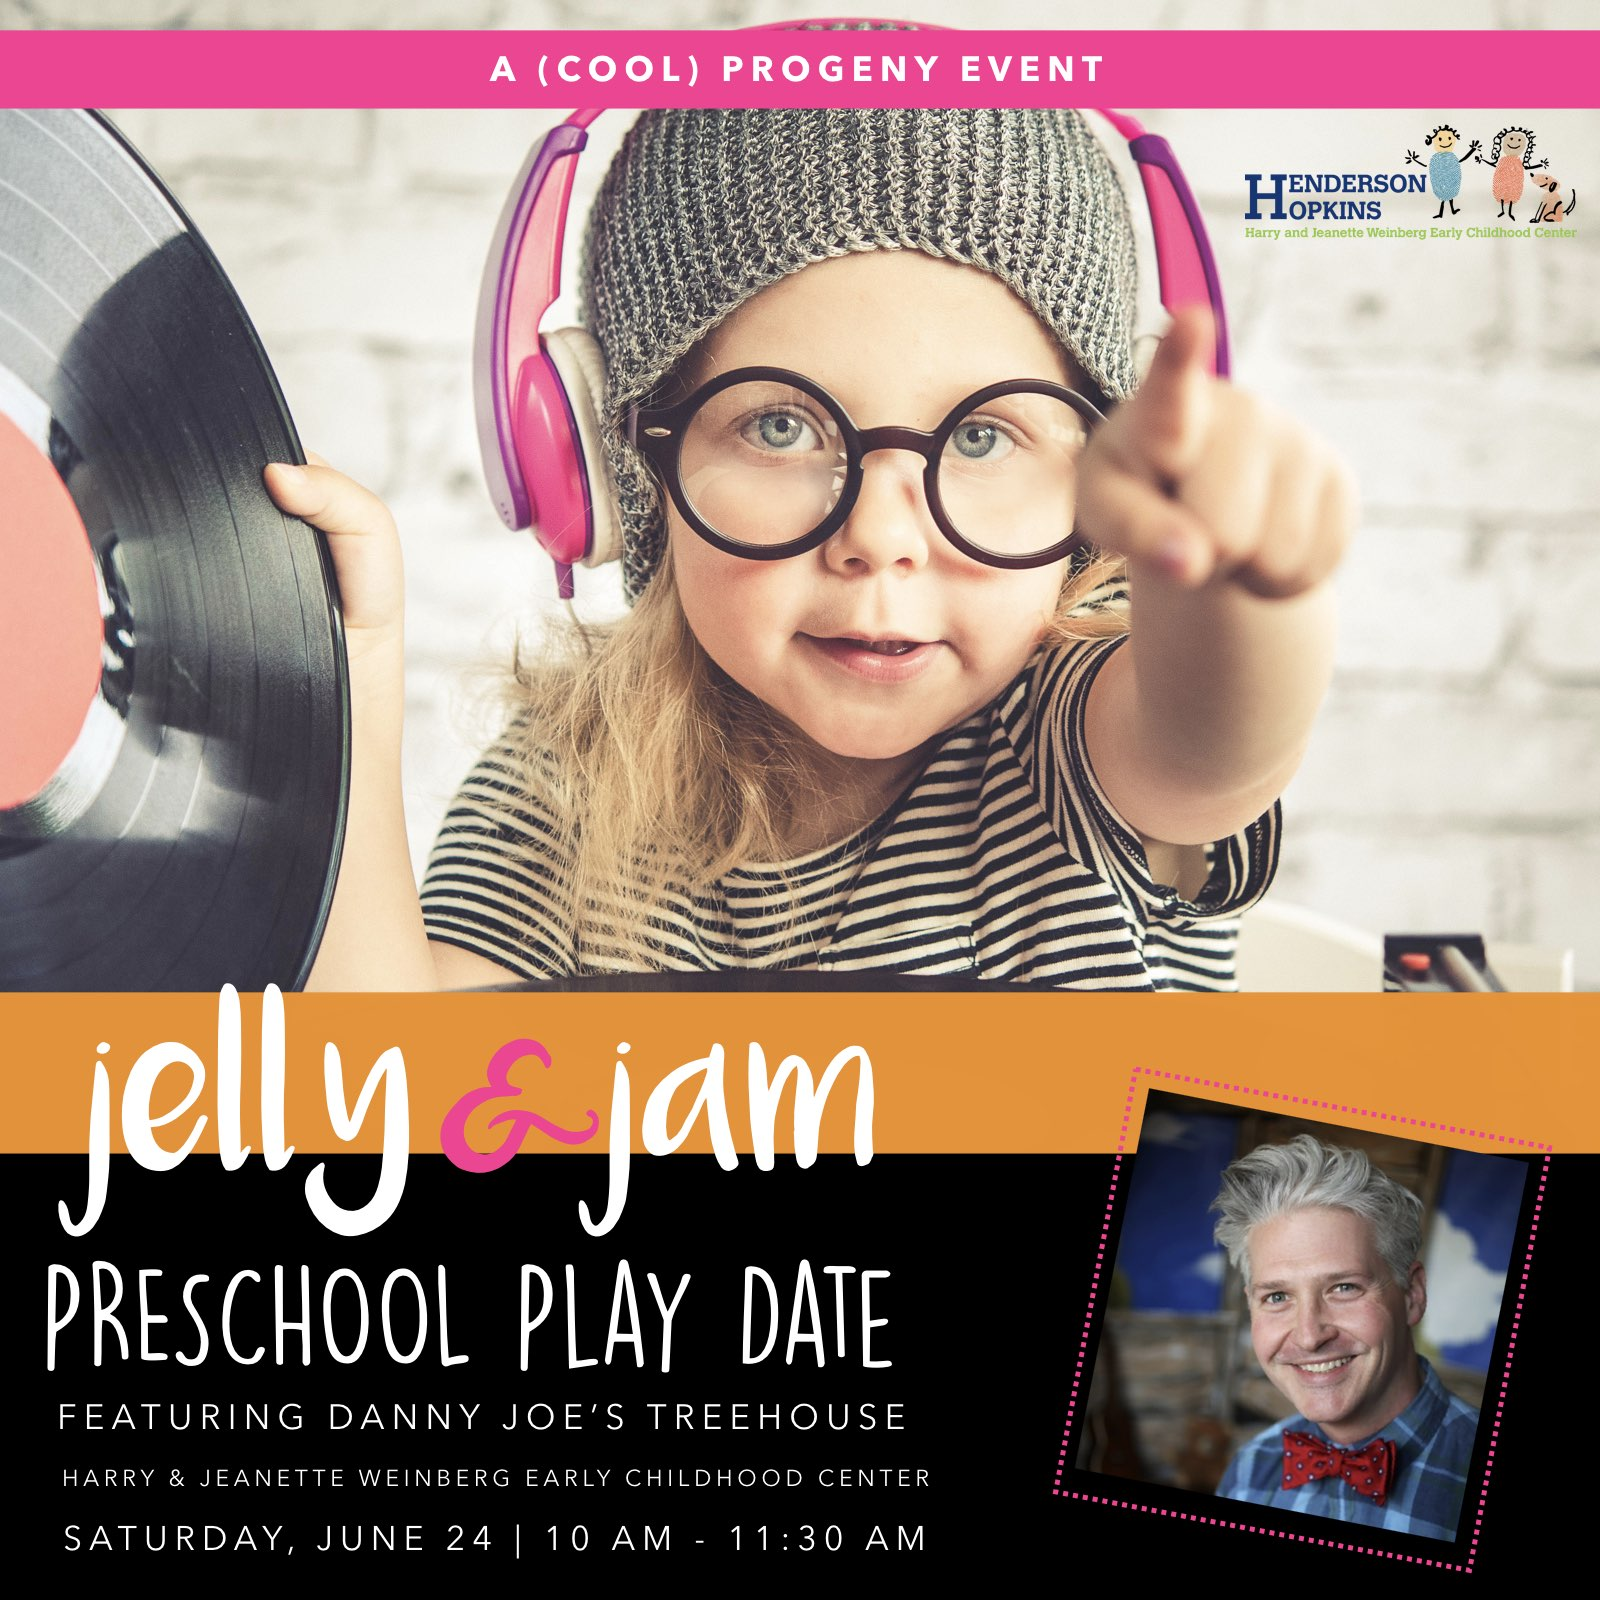 Jelly and Jam Preschool Play Date with Danny Joe's Treehouse - (cool) progeny